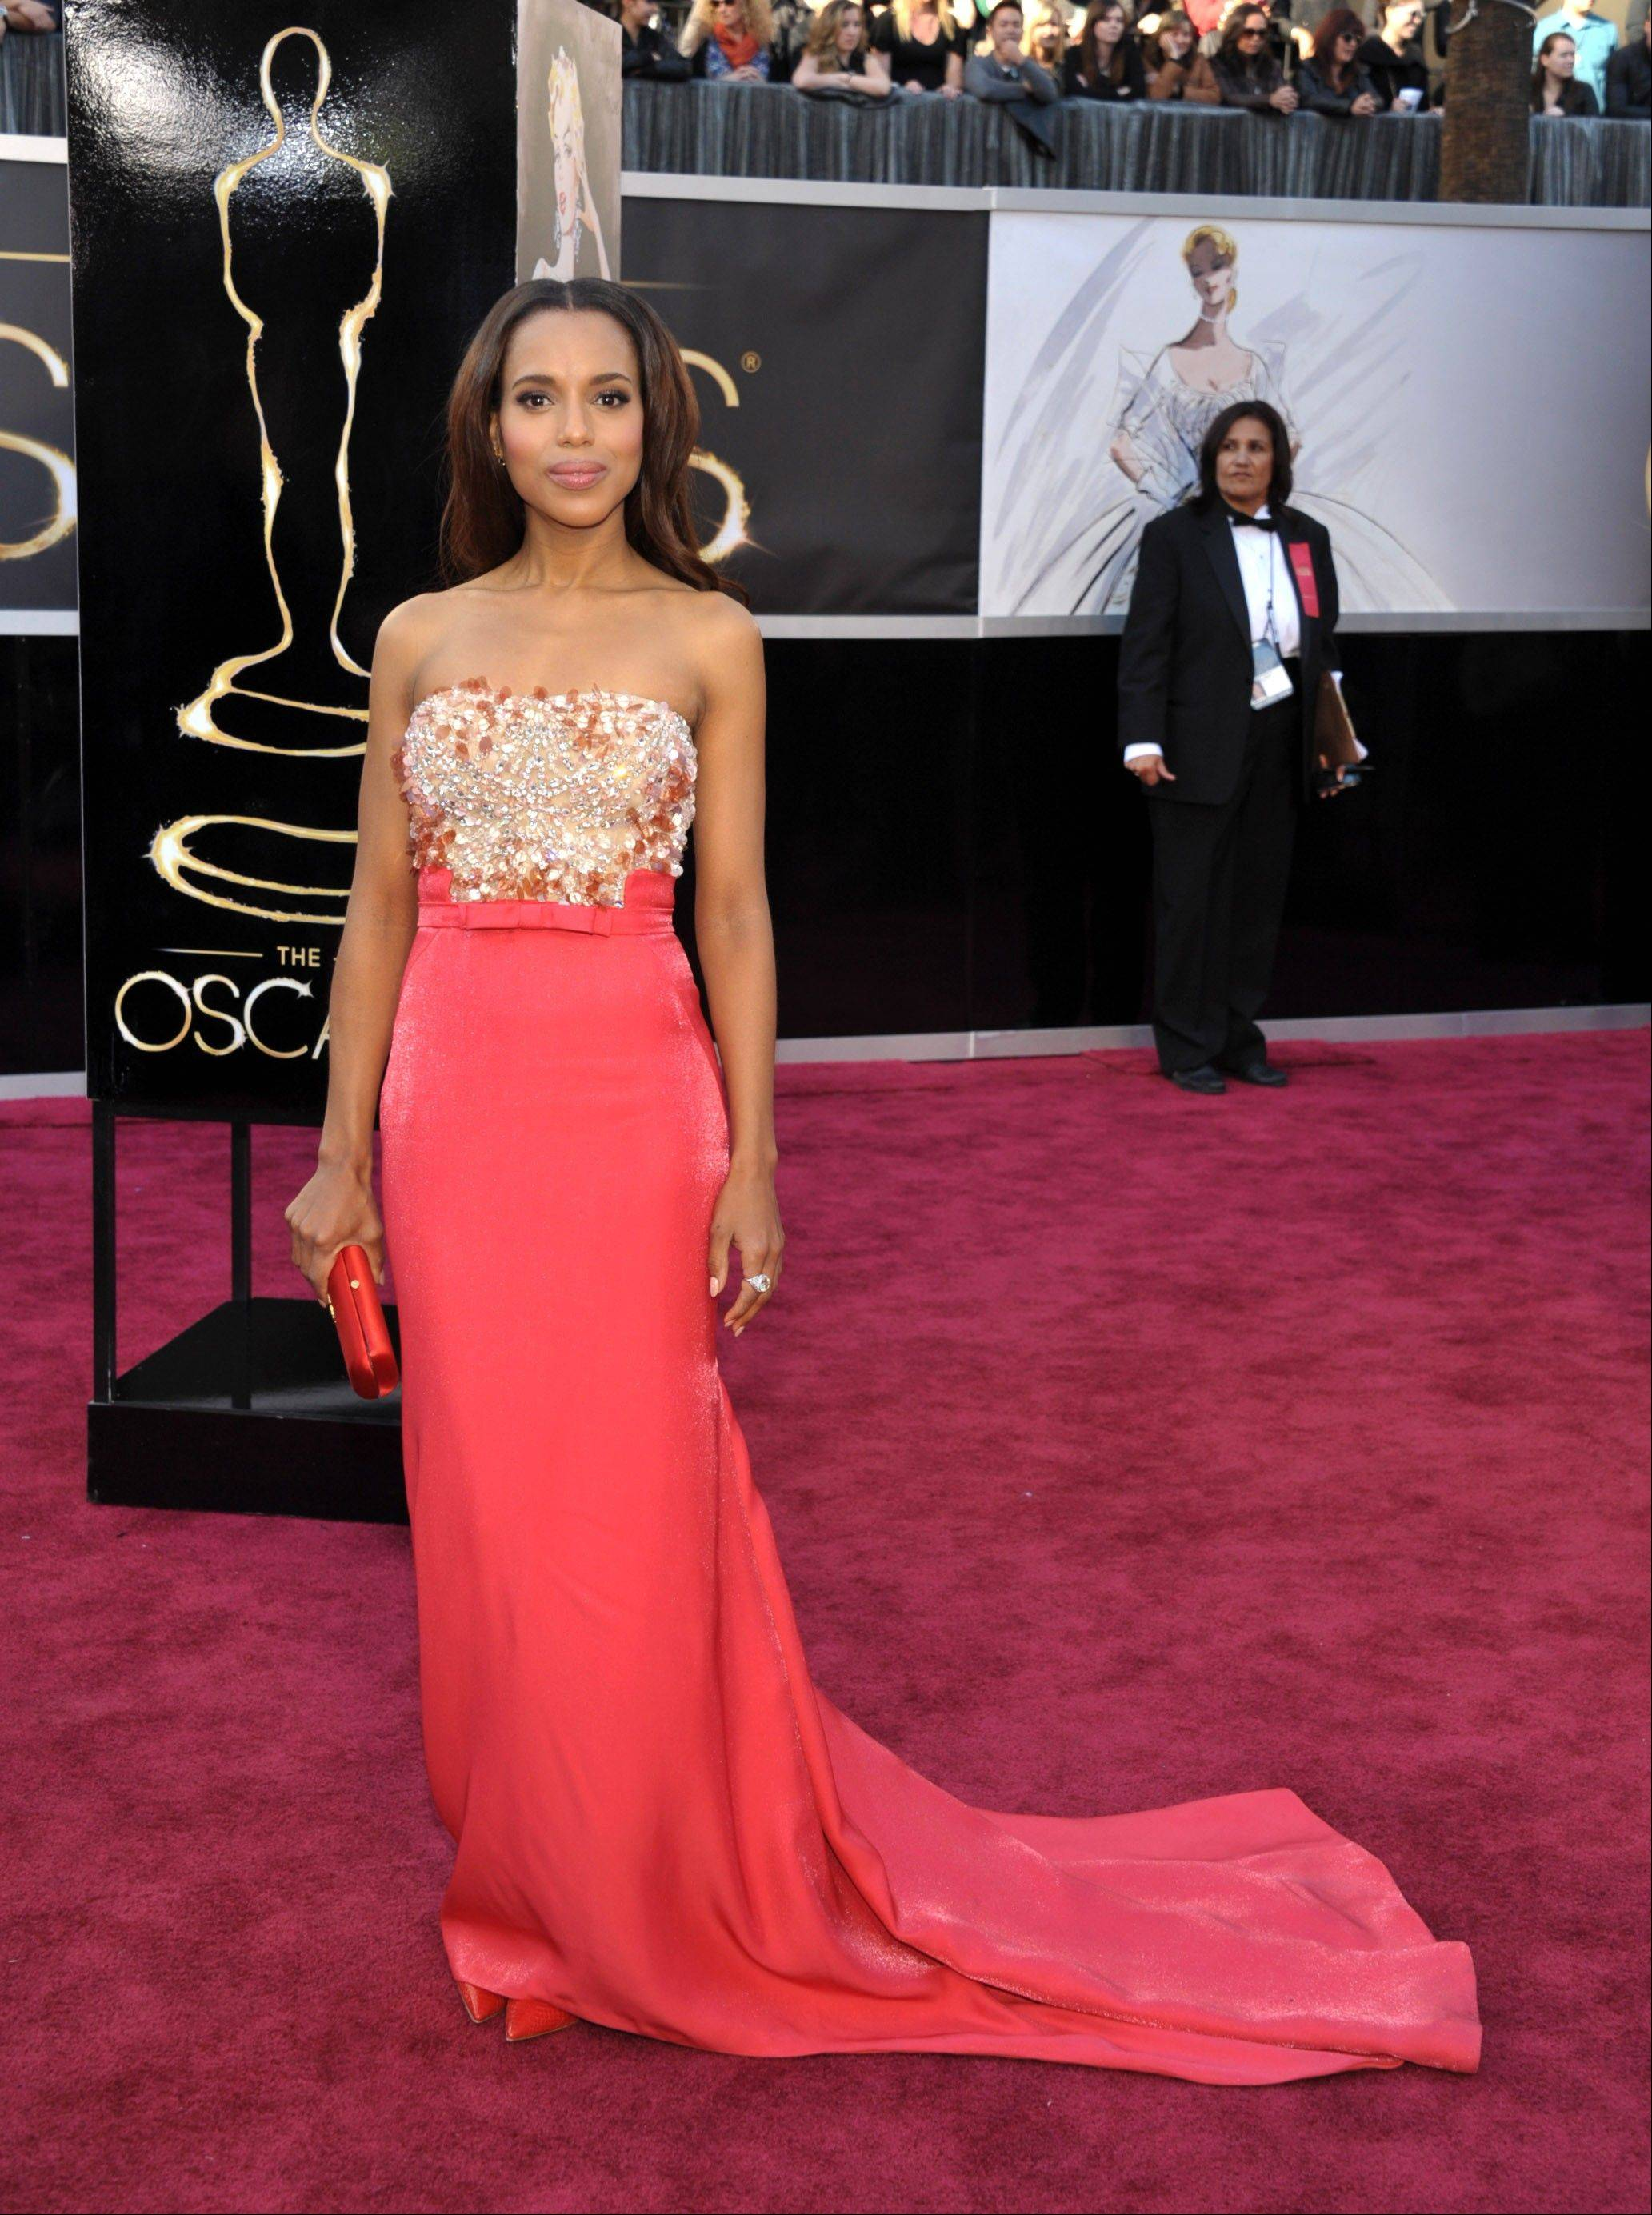 Actress Kerry Washington arrives at the 85th Academy Awards at the Dolby Theatre on Sunday in Los Angeles.